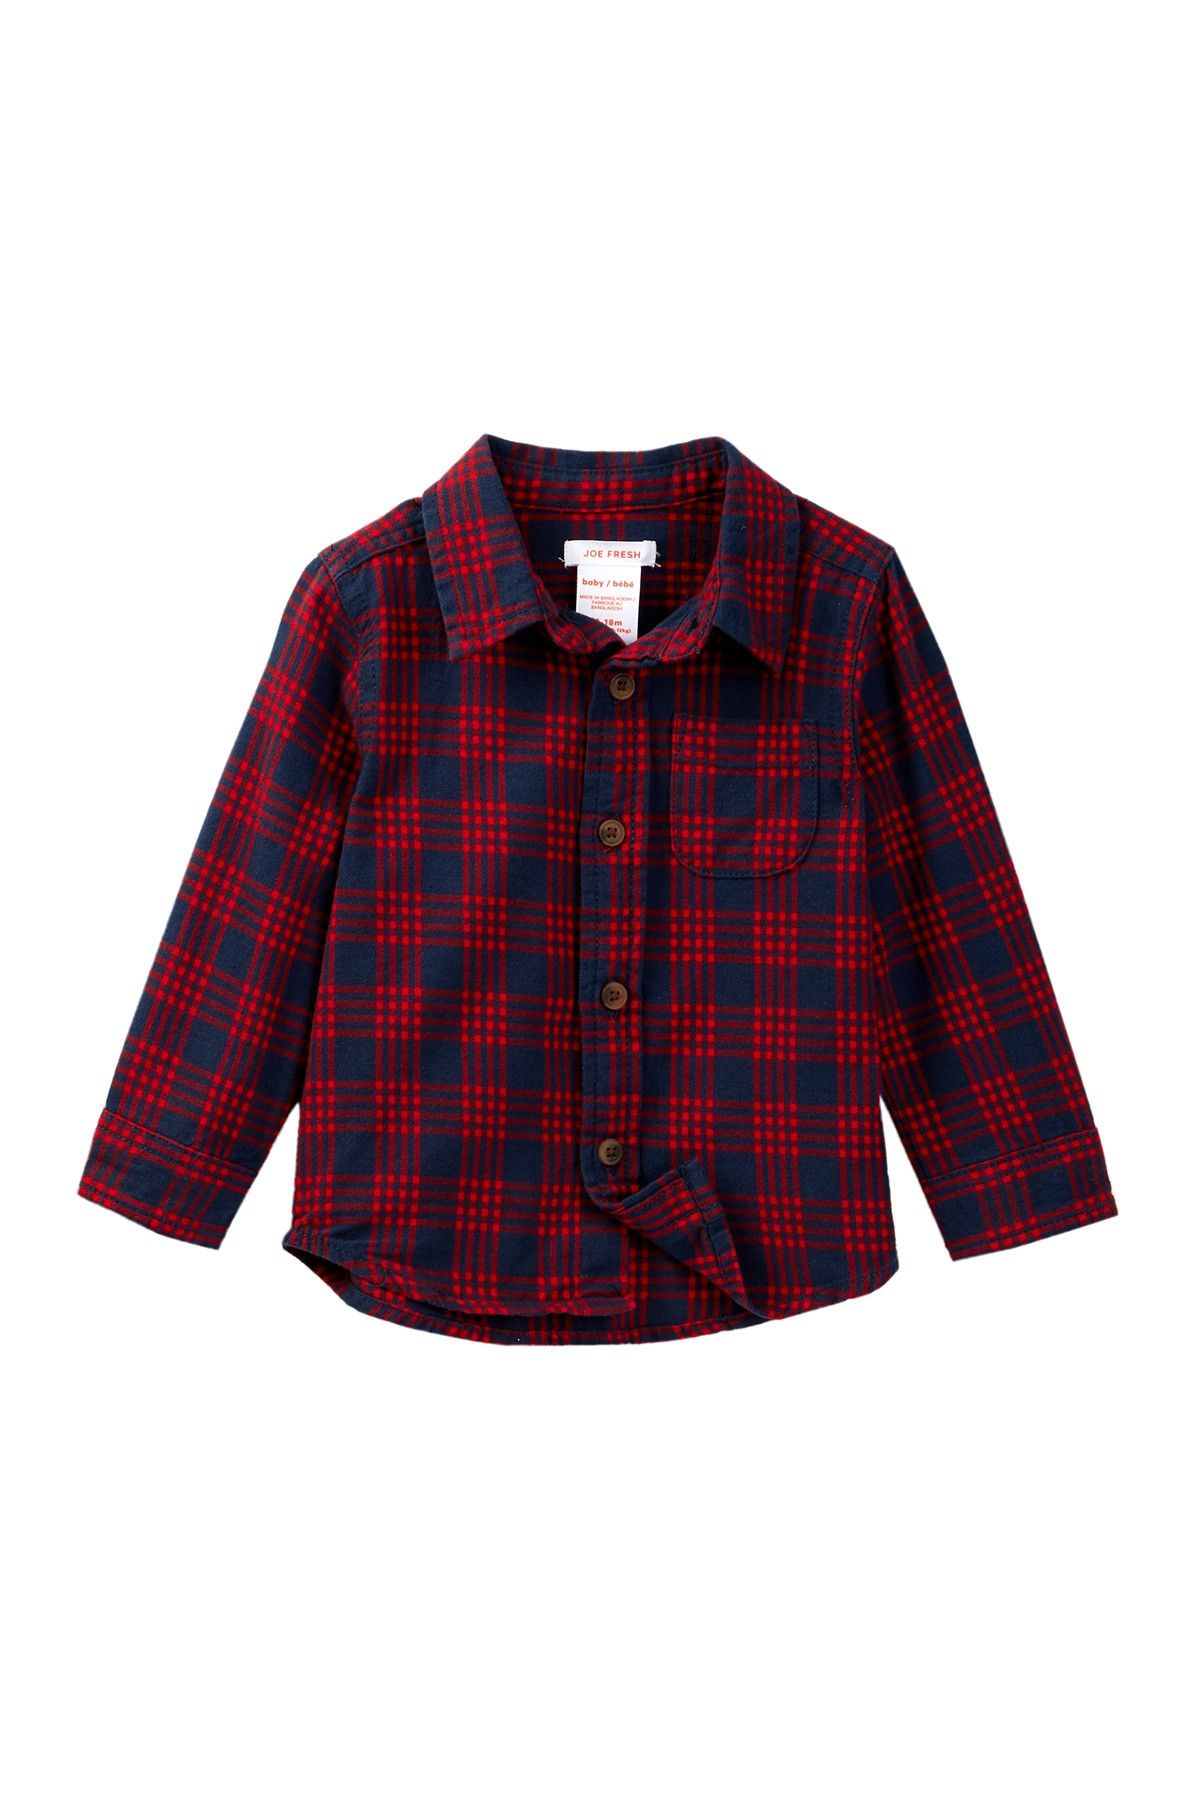 Flannel shirt for baby boy  Flannel Shirt Baby Boys  Flannel shirts Free shipping and Products